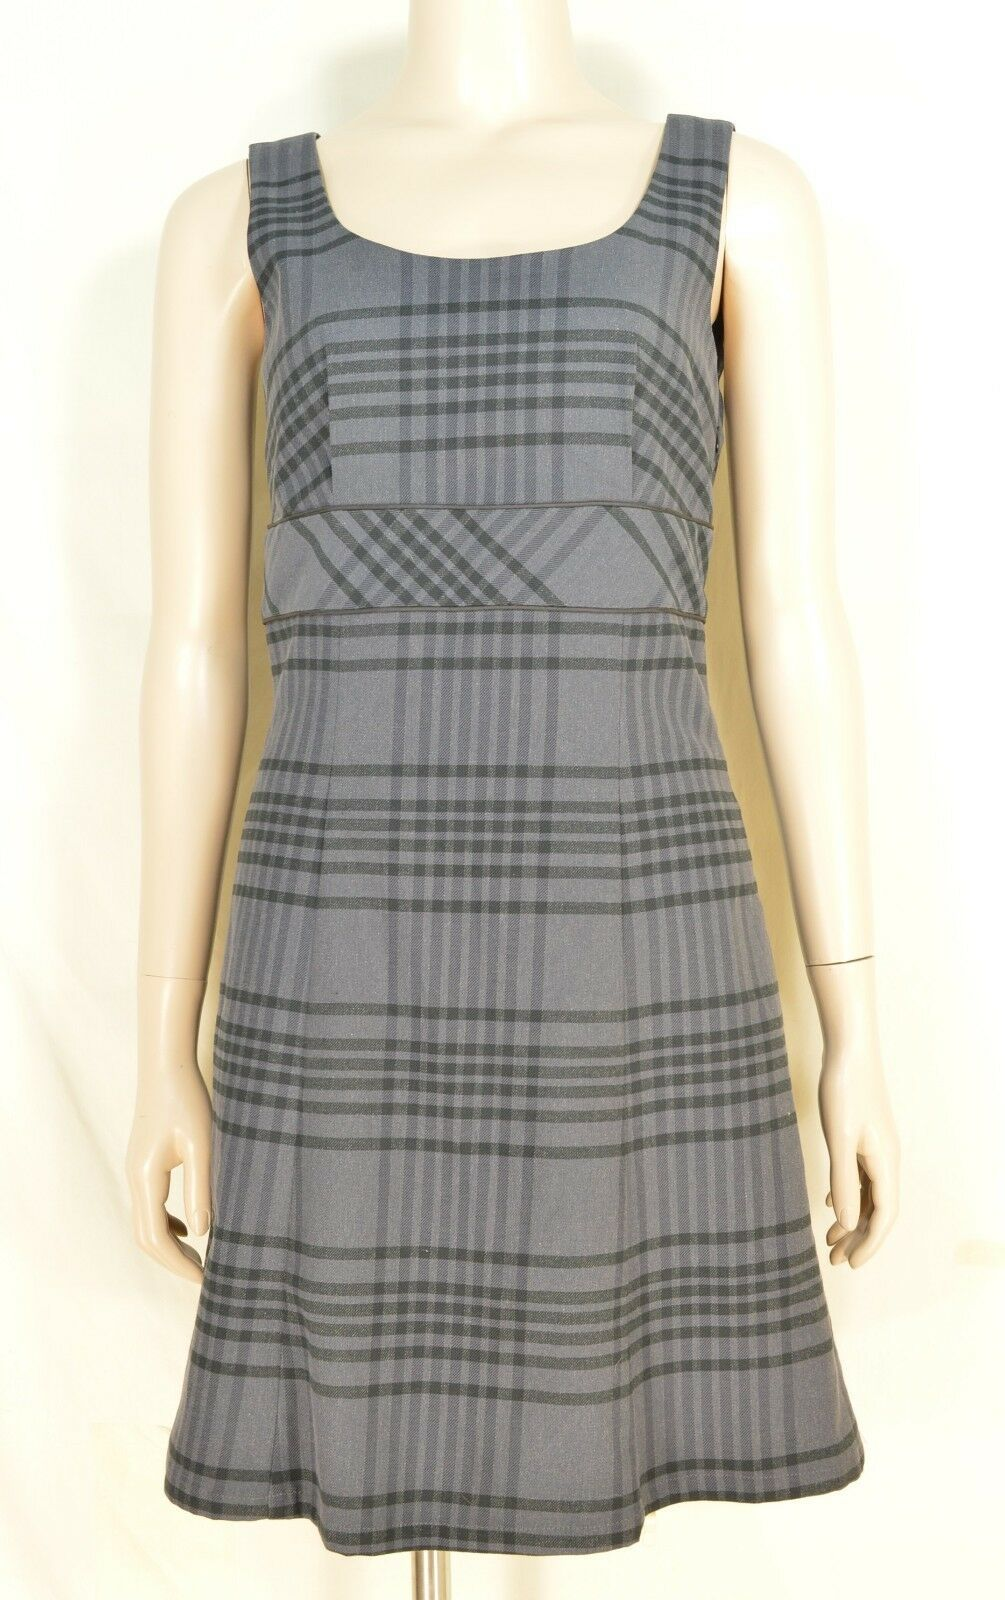 Primary image for Tommy Hilfiger dress SZ 0 NWT gray plaid sleeveless cotton blend